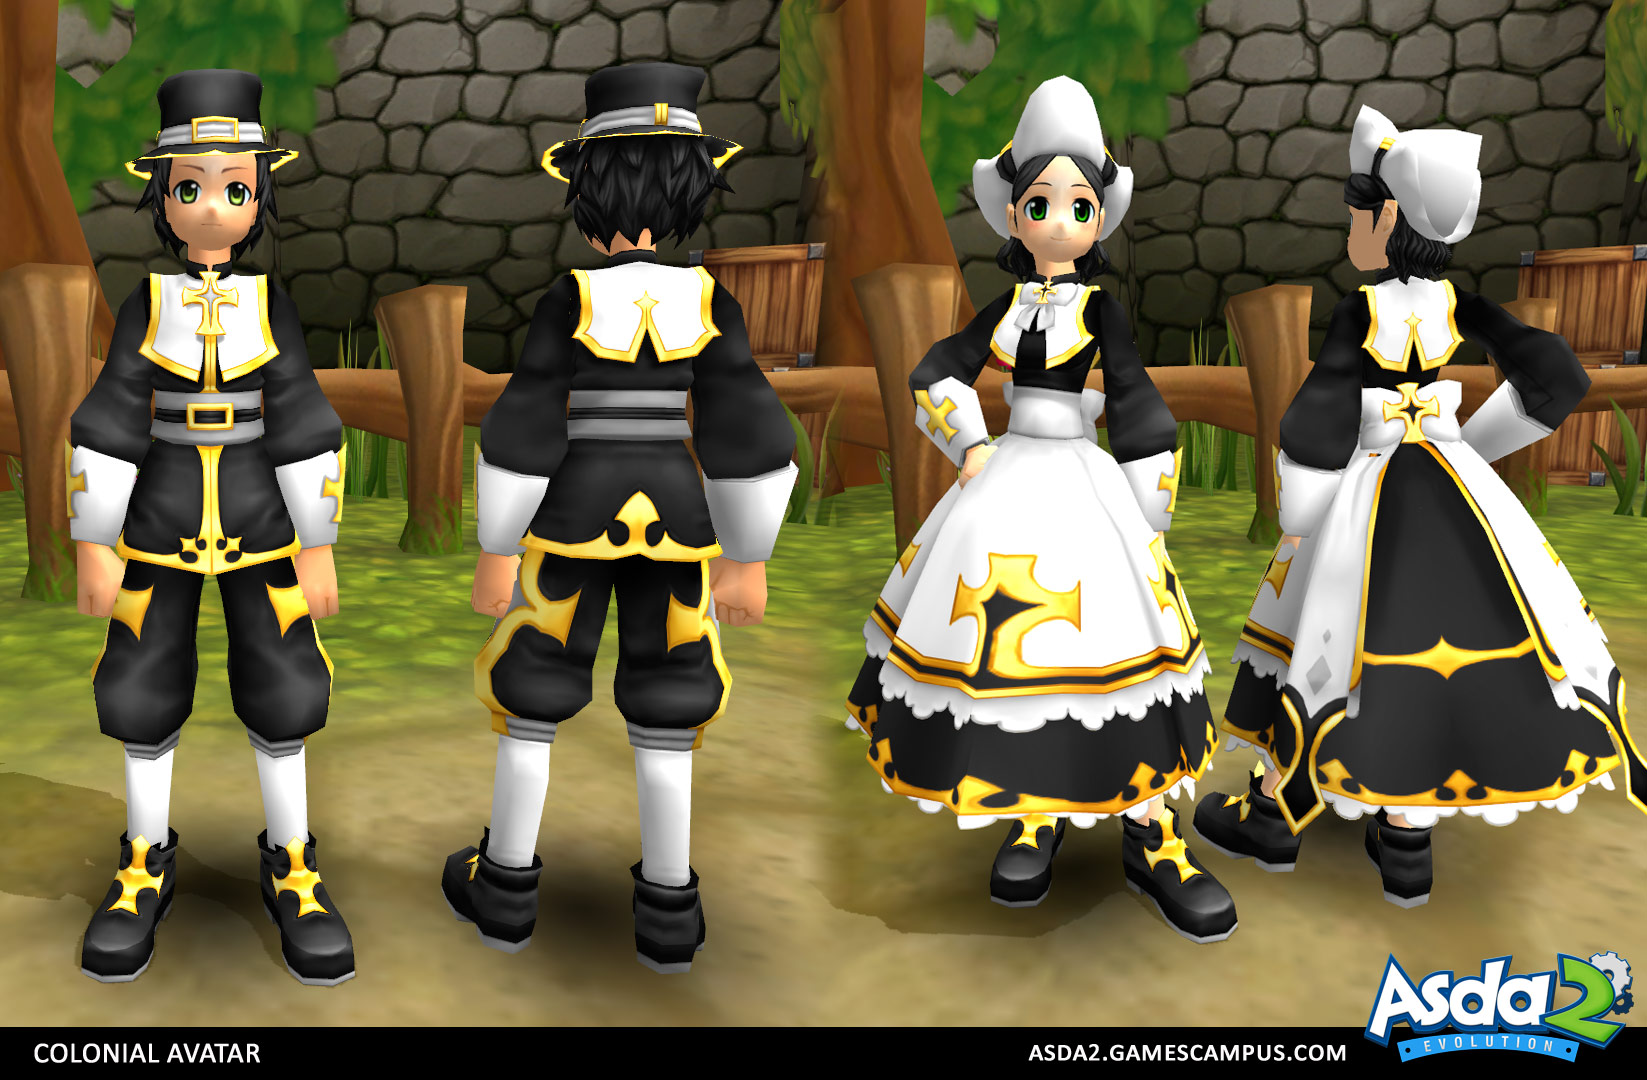 Best Anime MMORPG - Asda 2 - Colonial Avatar